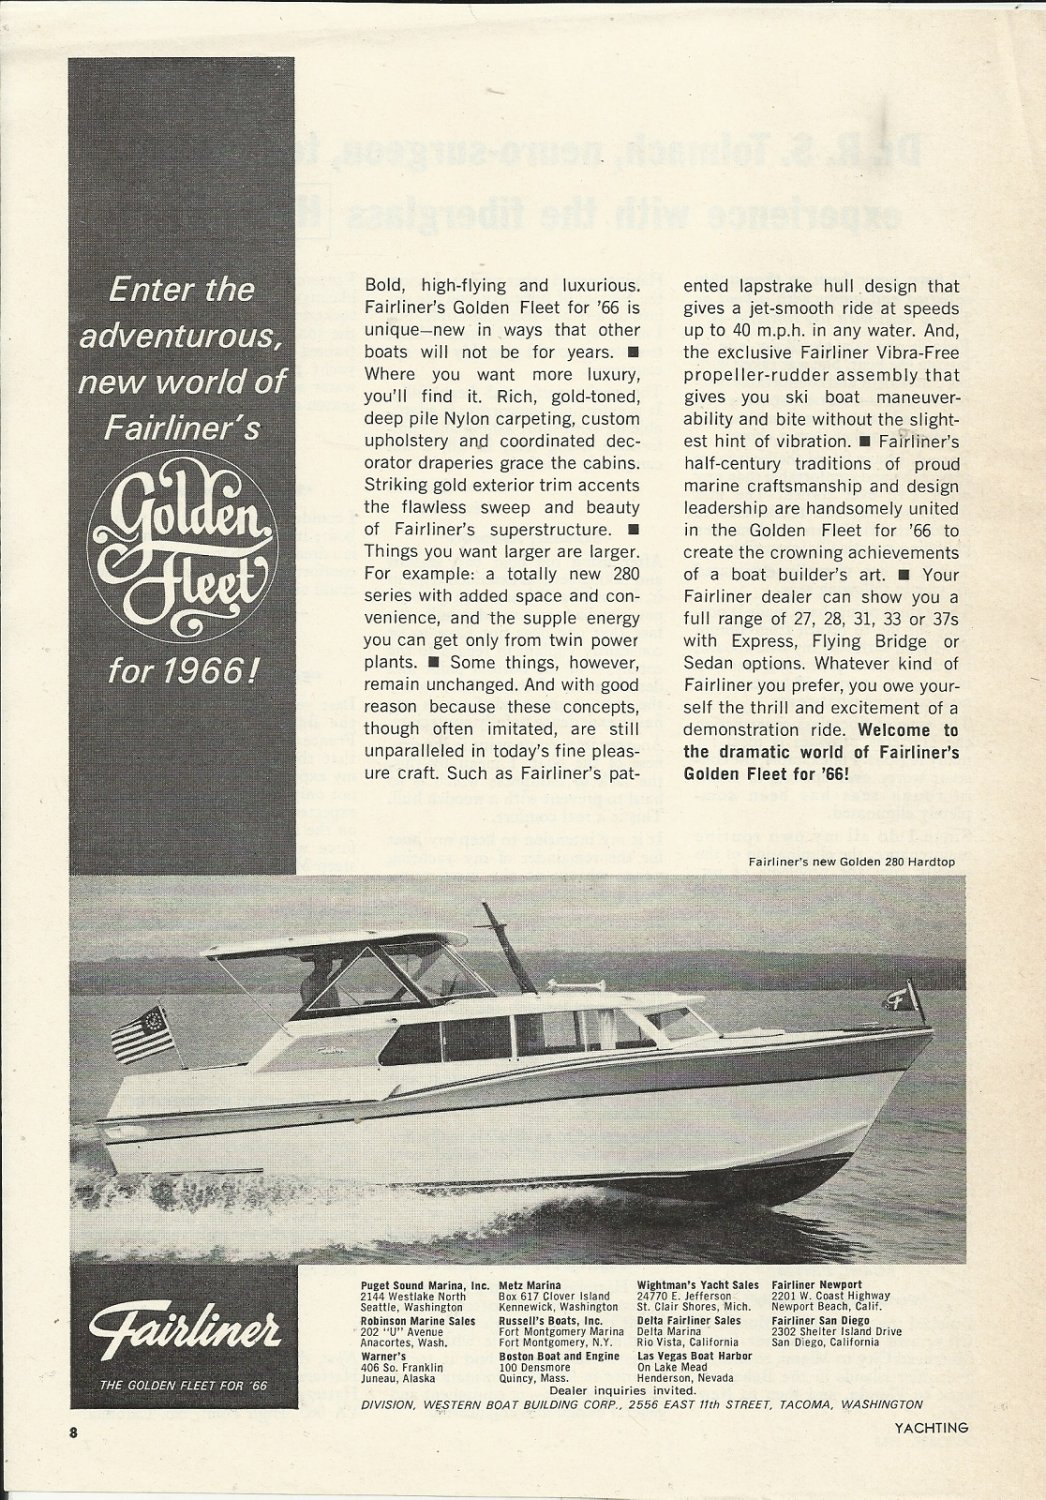 1965 Western Boat Building Co. Ad-The 1966 Fairliner